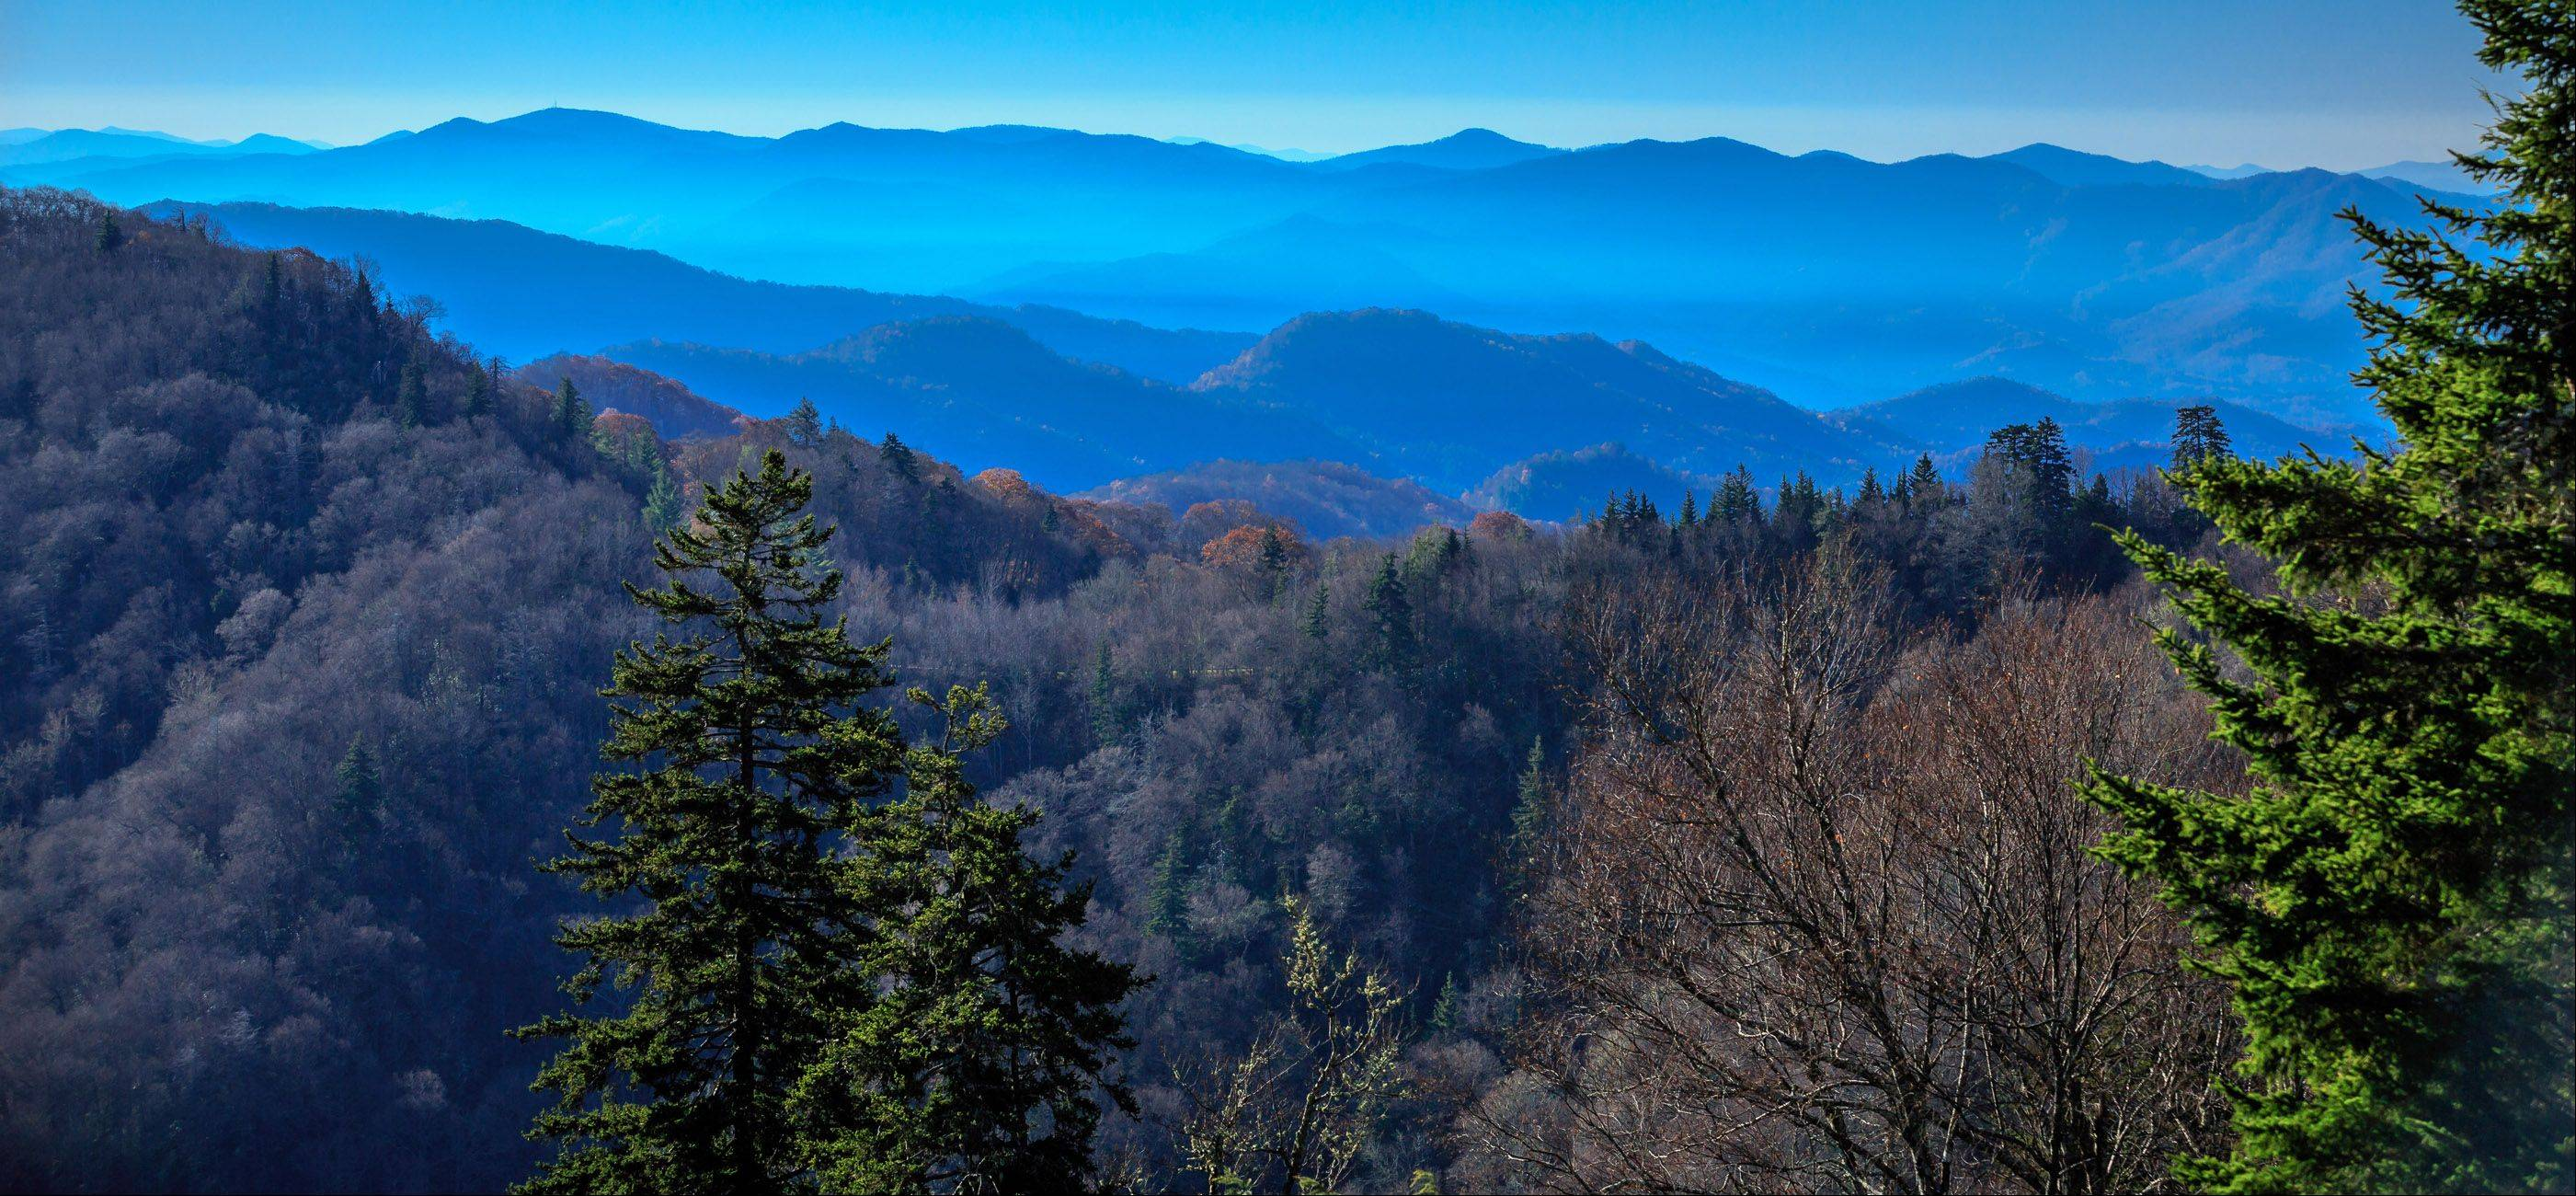 The Great Smoky Mountains in Tennessee at 8 a.m. on November 11th looking toward the southeast from Clingman's Dome, the highest point in the park at 6,643 feet.